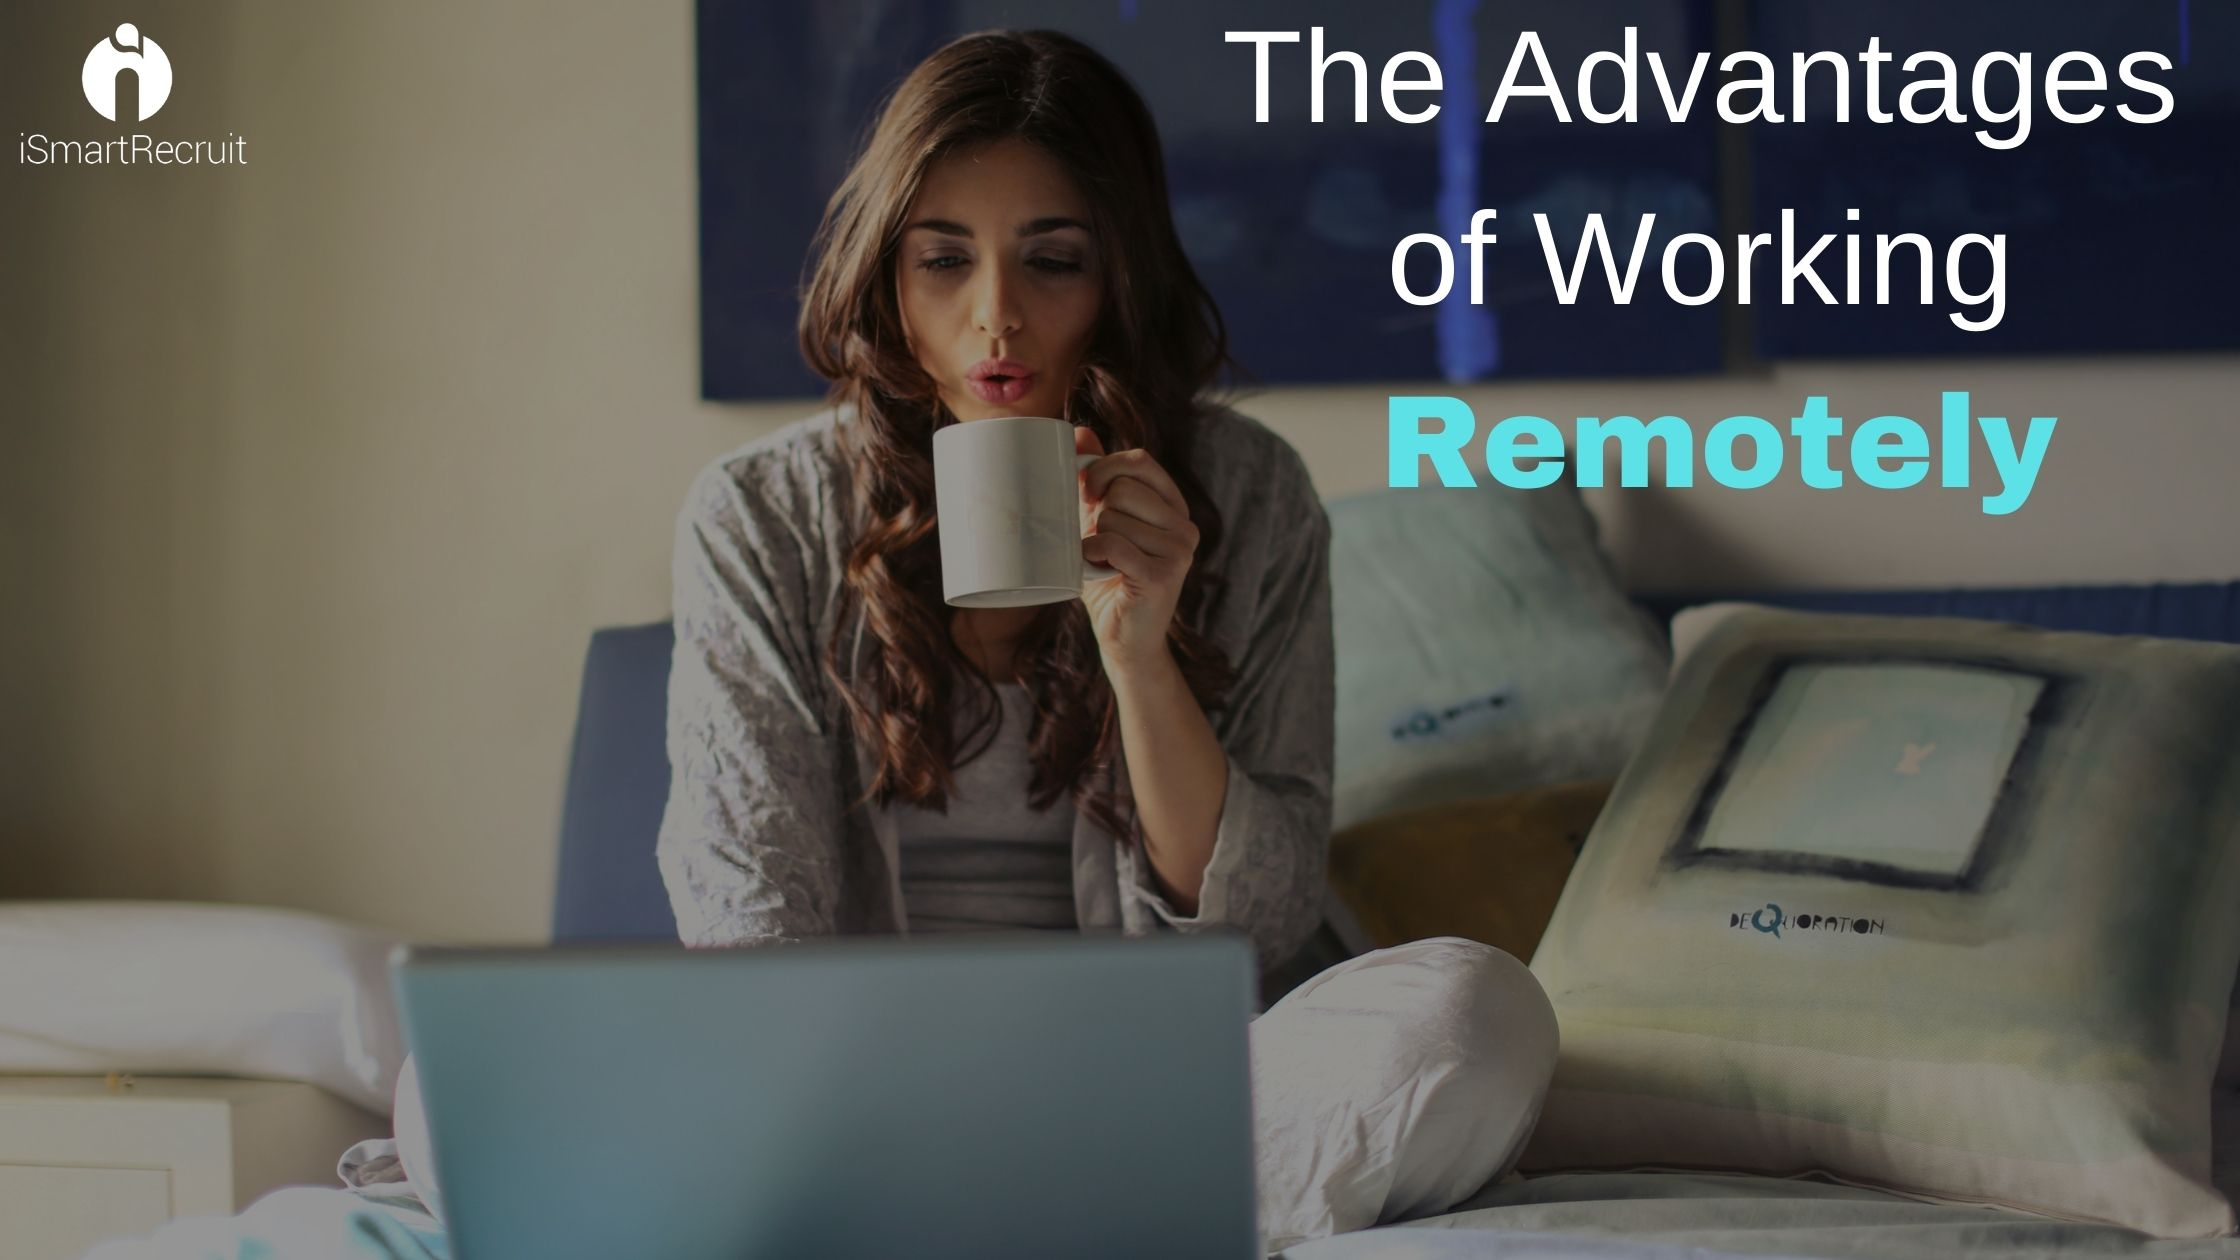 The Advantages of Working Remotely